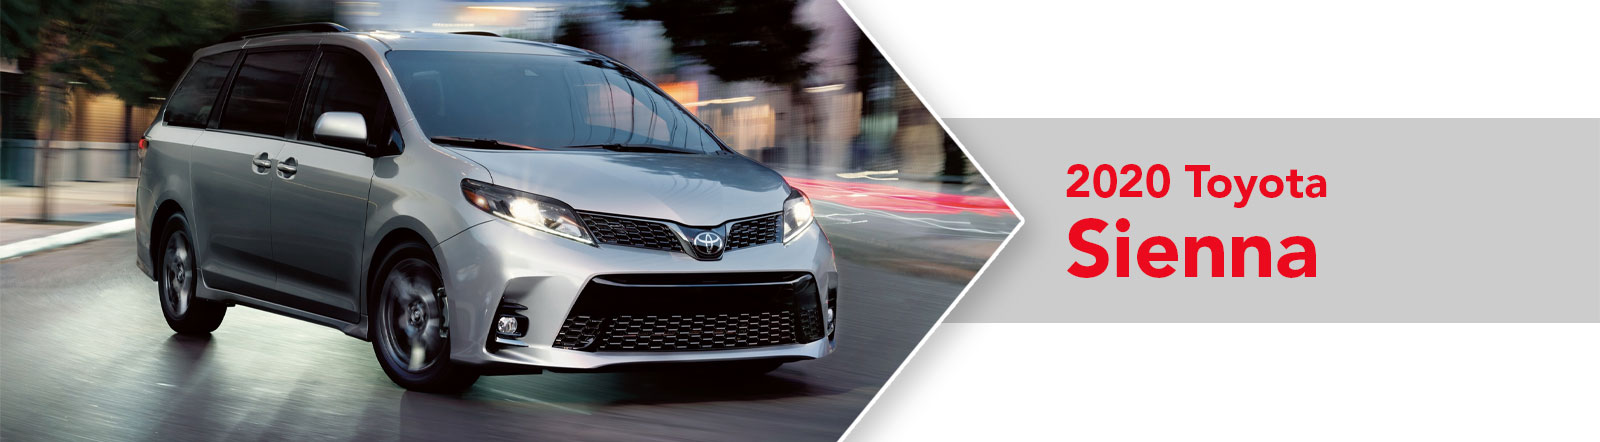 All-New 2020 Toyota Sienna For Sale in Metairie, LA